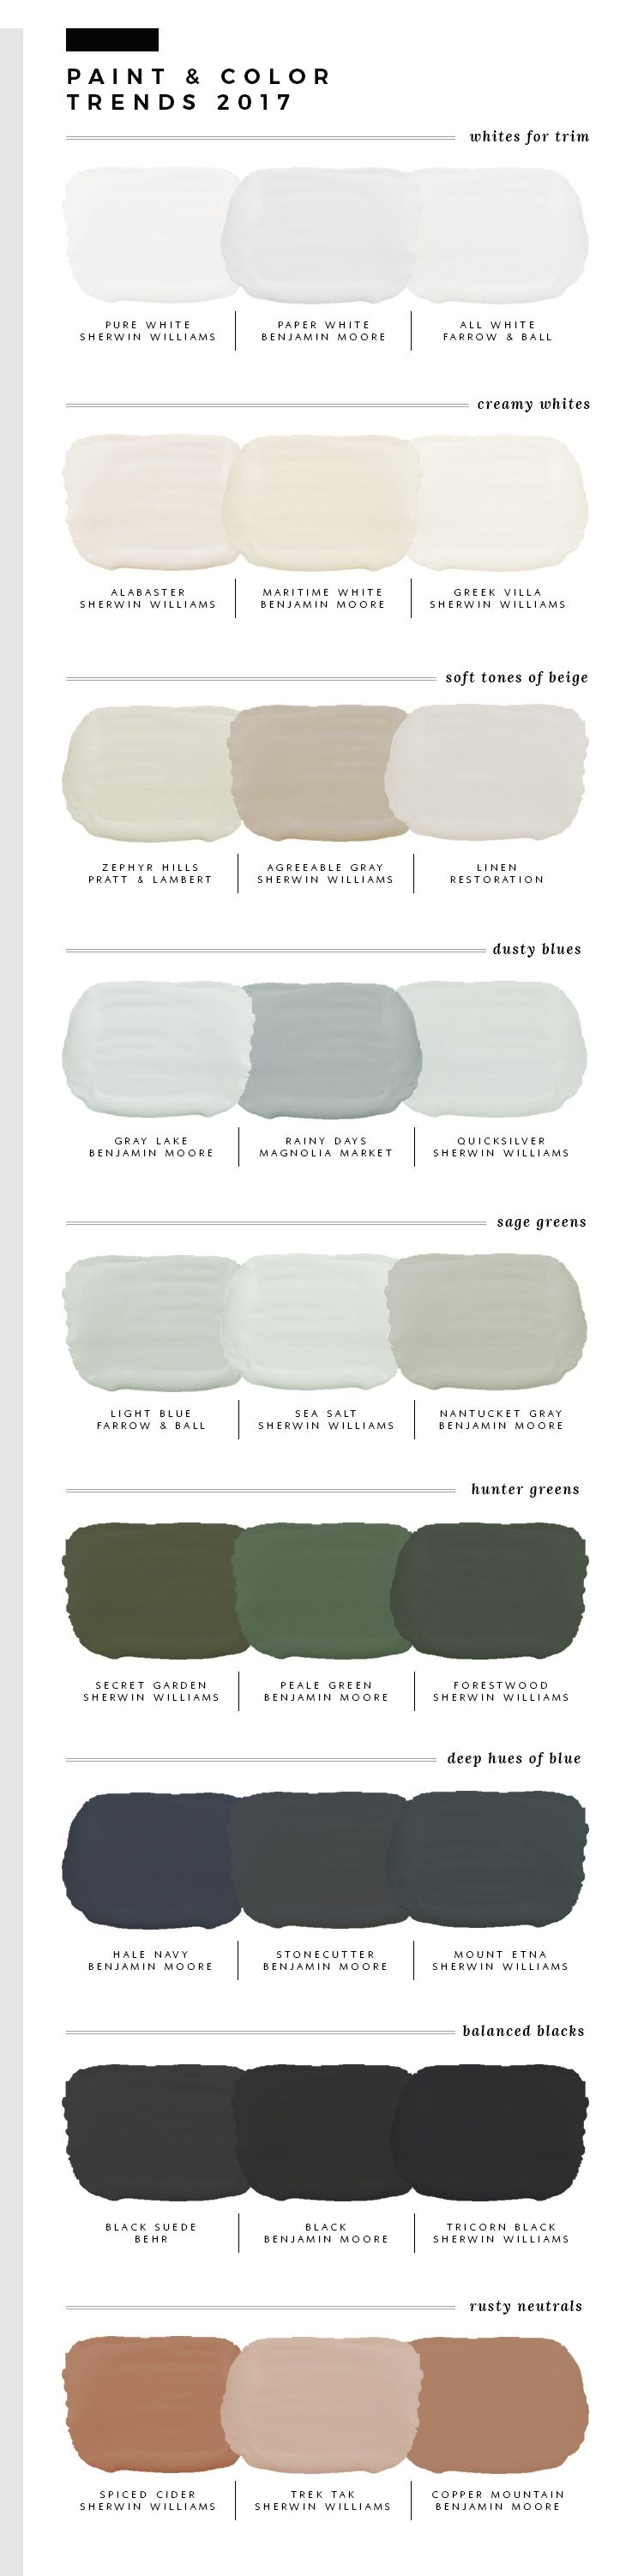 Predicted Paint Colors For 2017